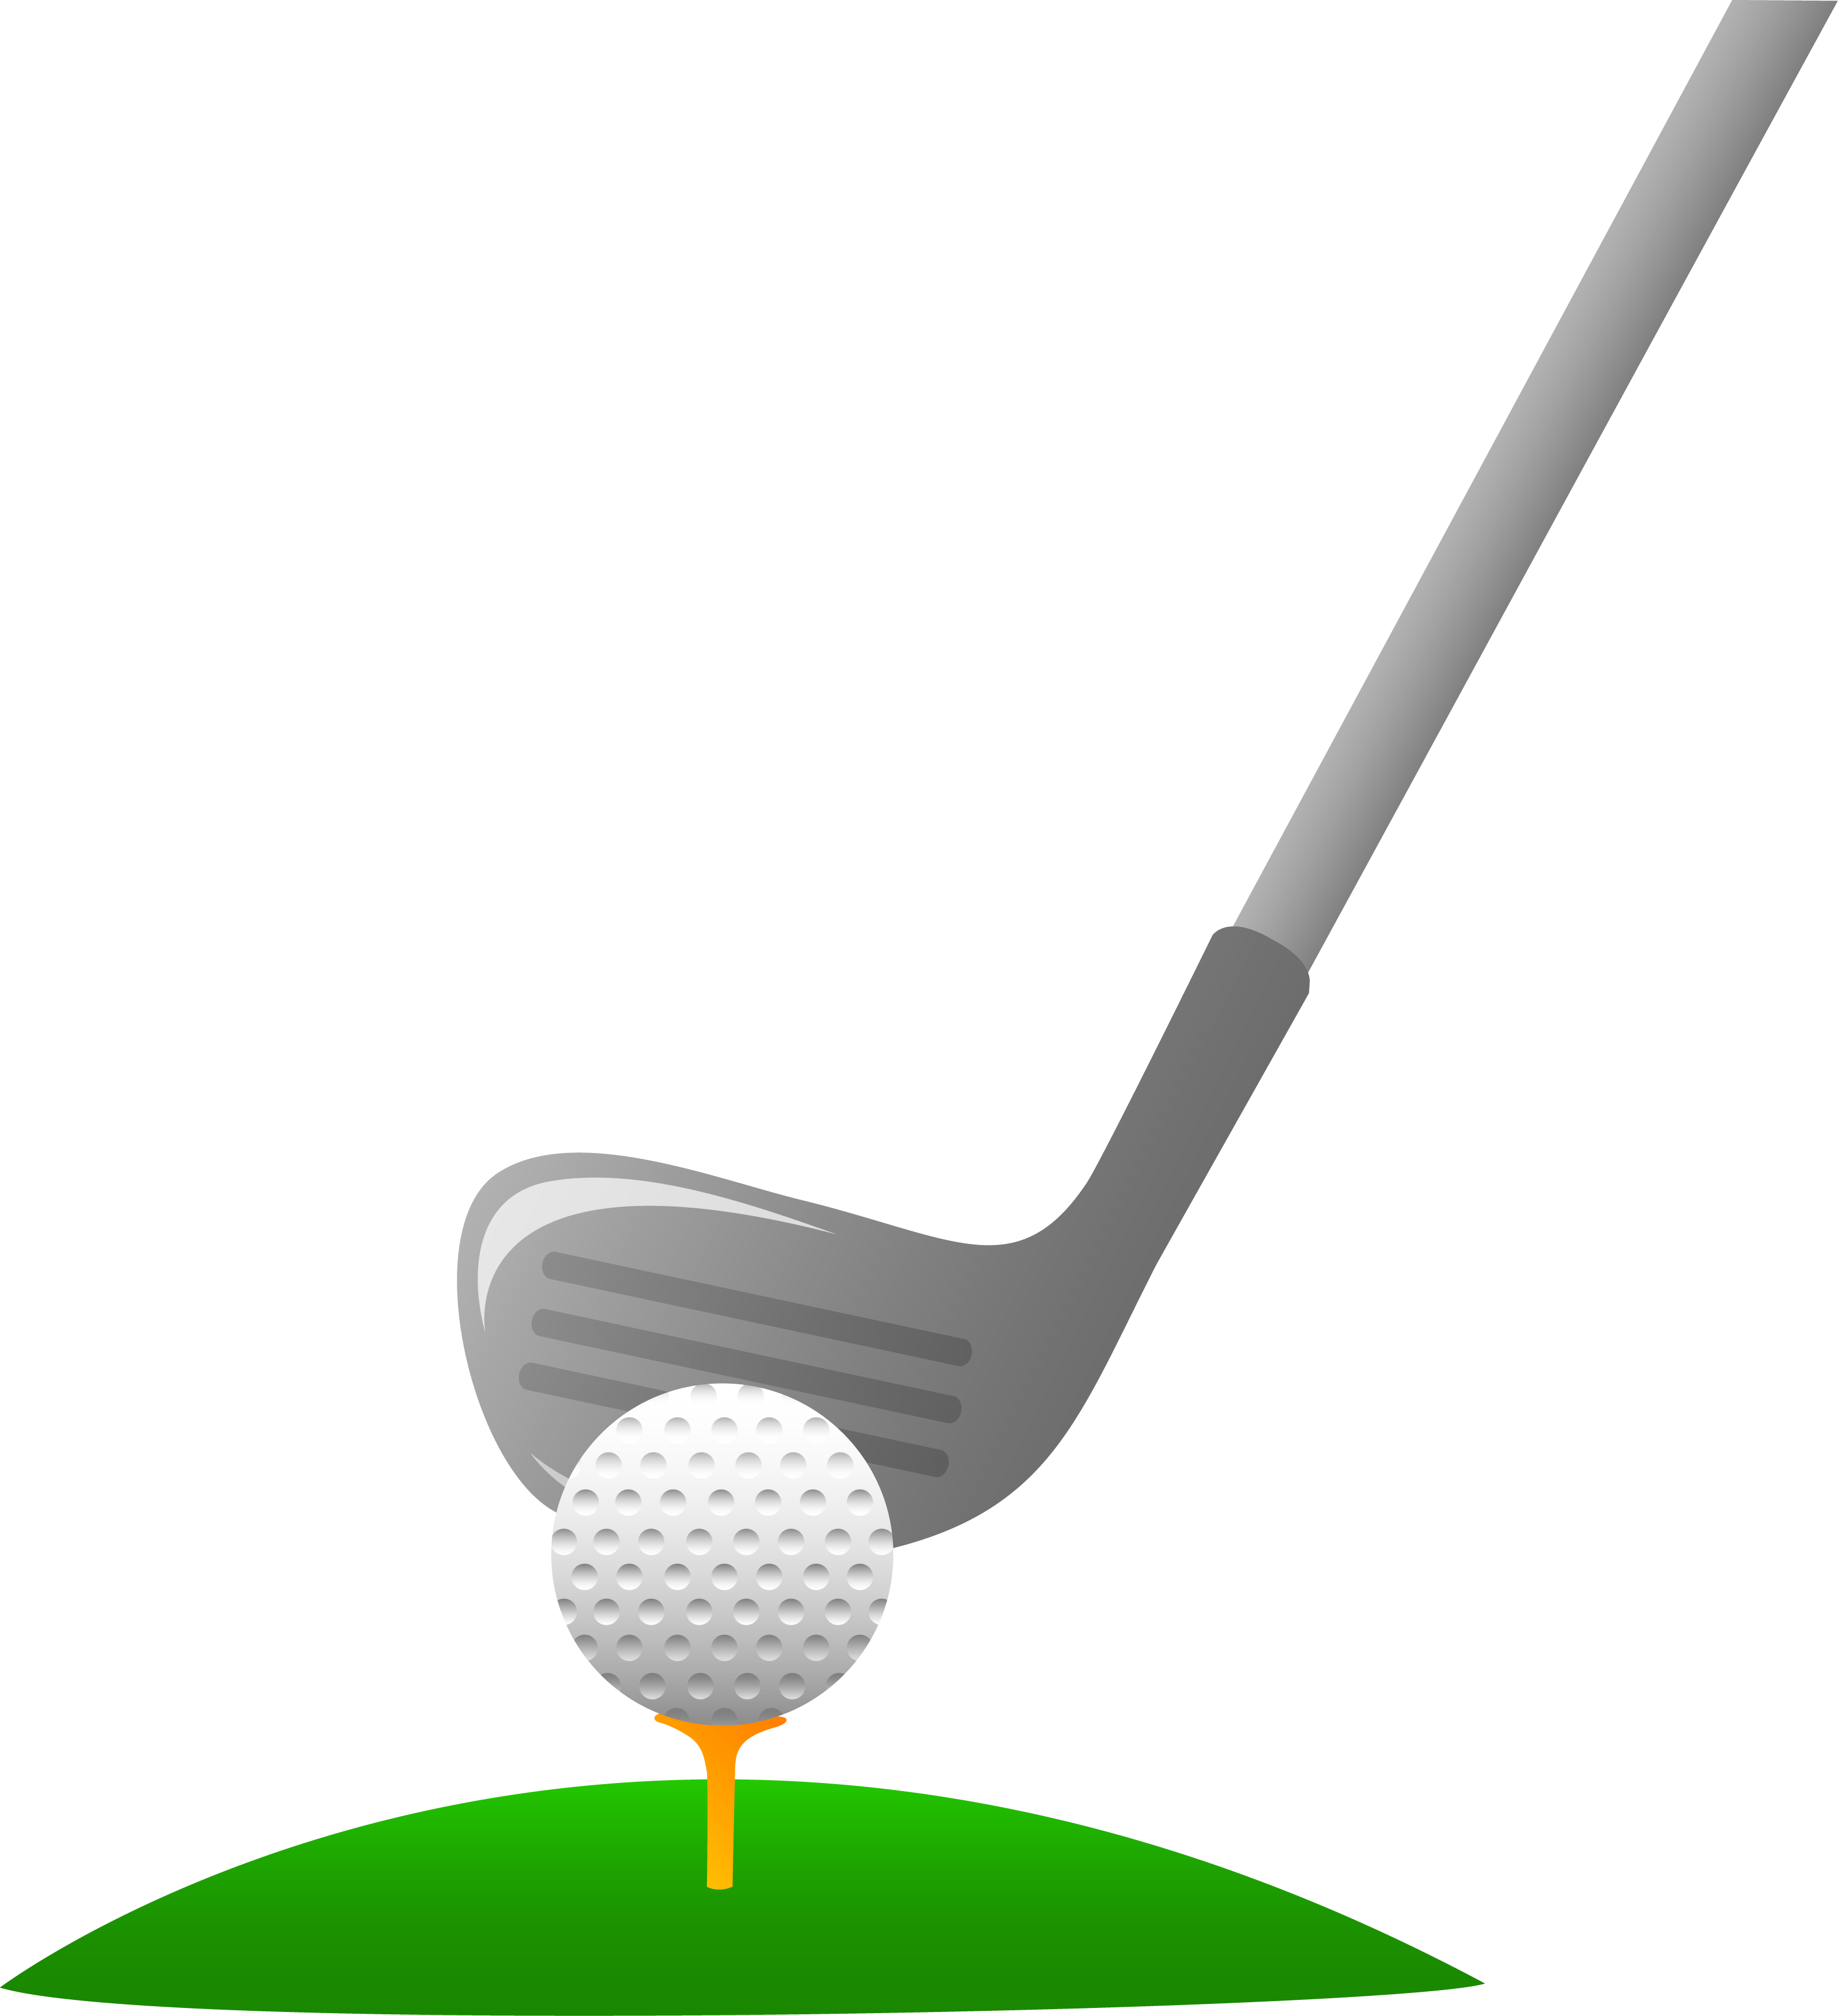 Free animated golf clipart.